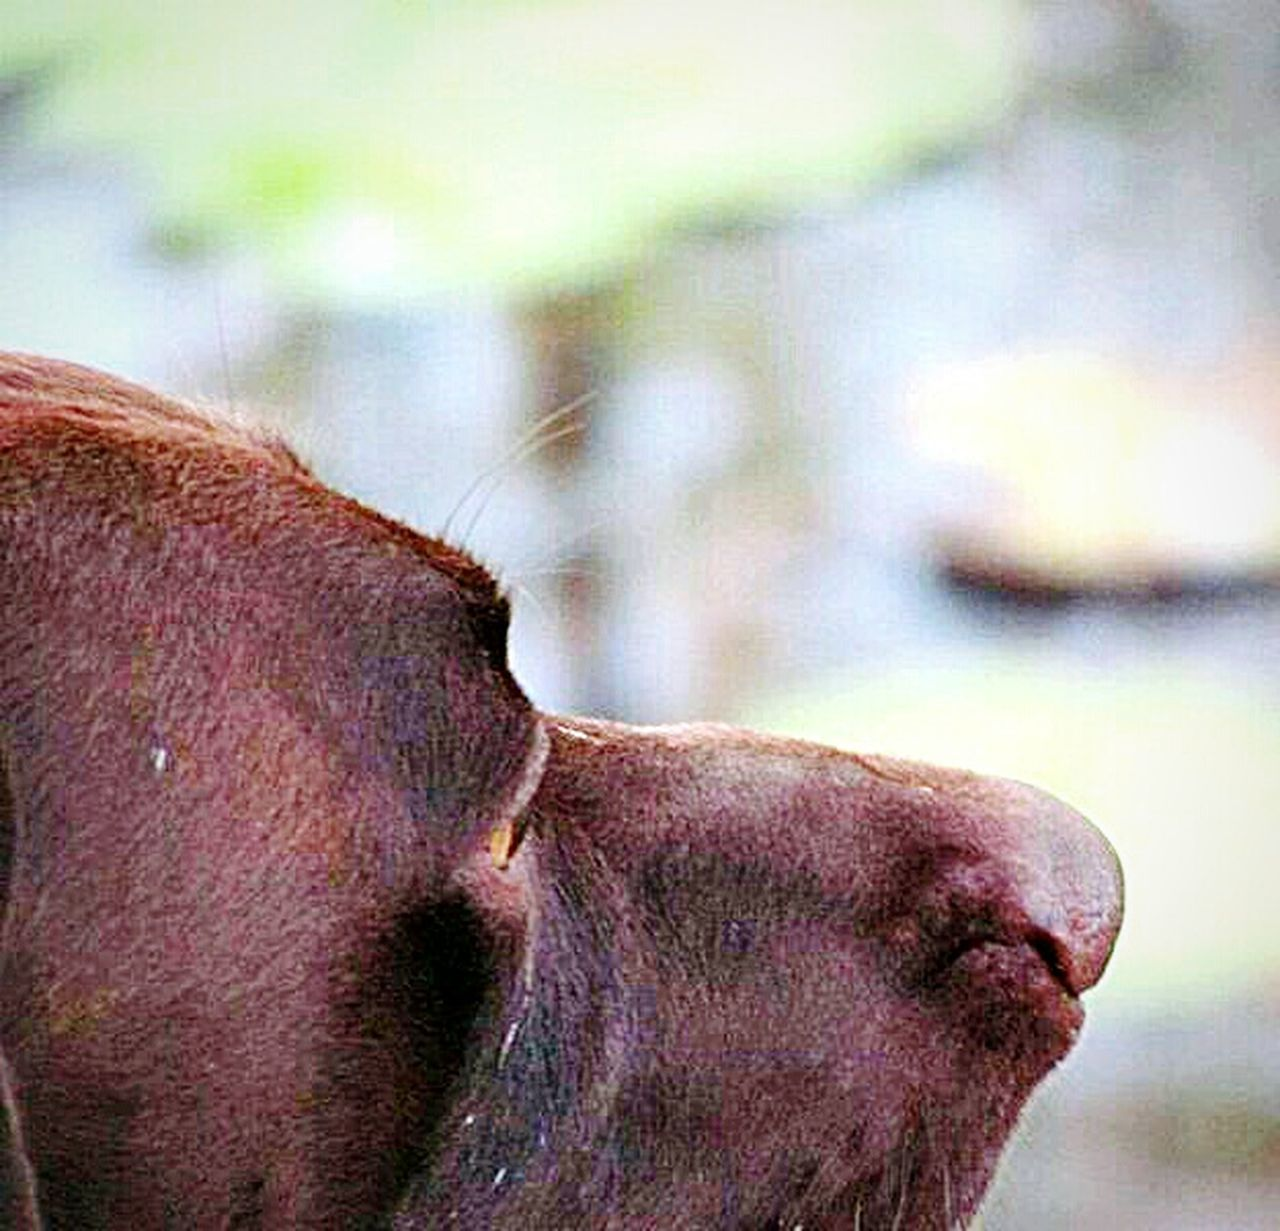 Macro Beauty Ocheesee Pond Florida Life Dogslife Dogsofeyeem Birddog German Shorthaired Pointer The Great Outdoors - 2015 EyeEm Awards